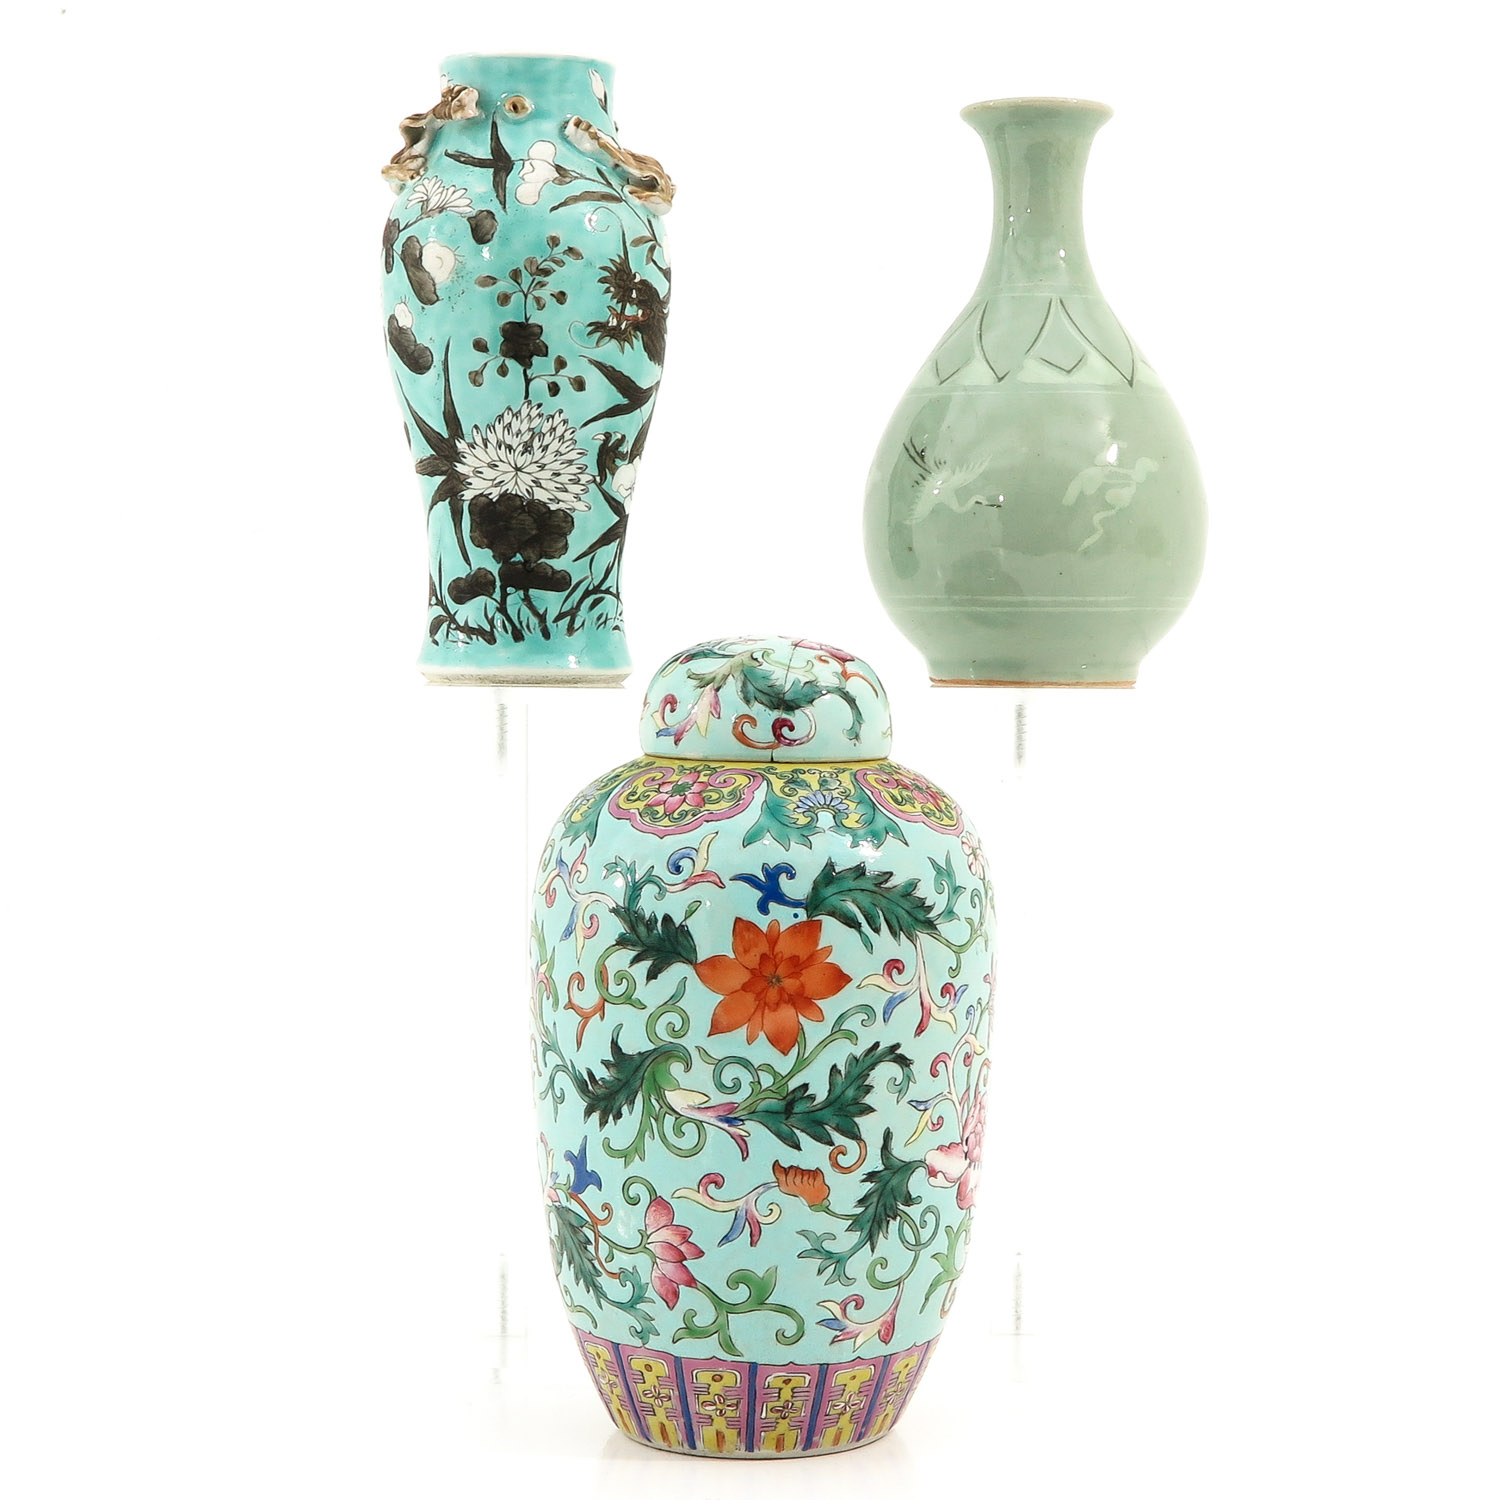 A Collection of 3 Vases - Image 4 of 9